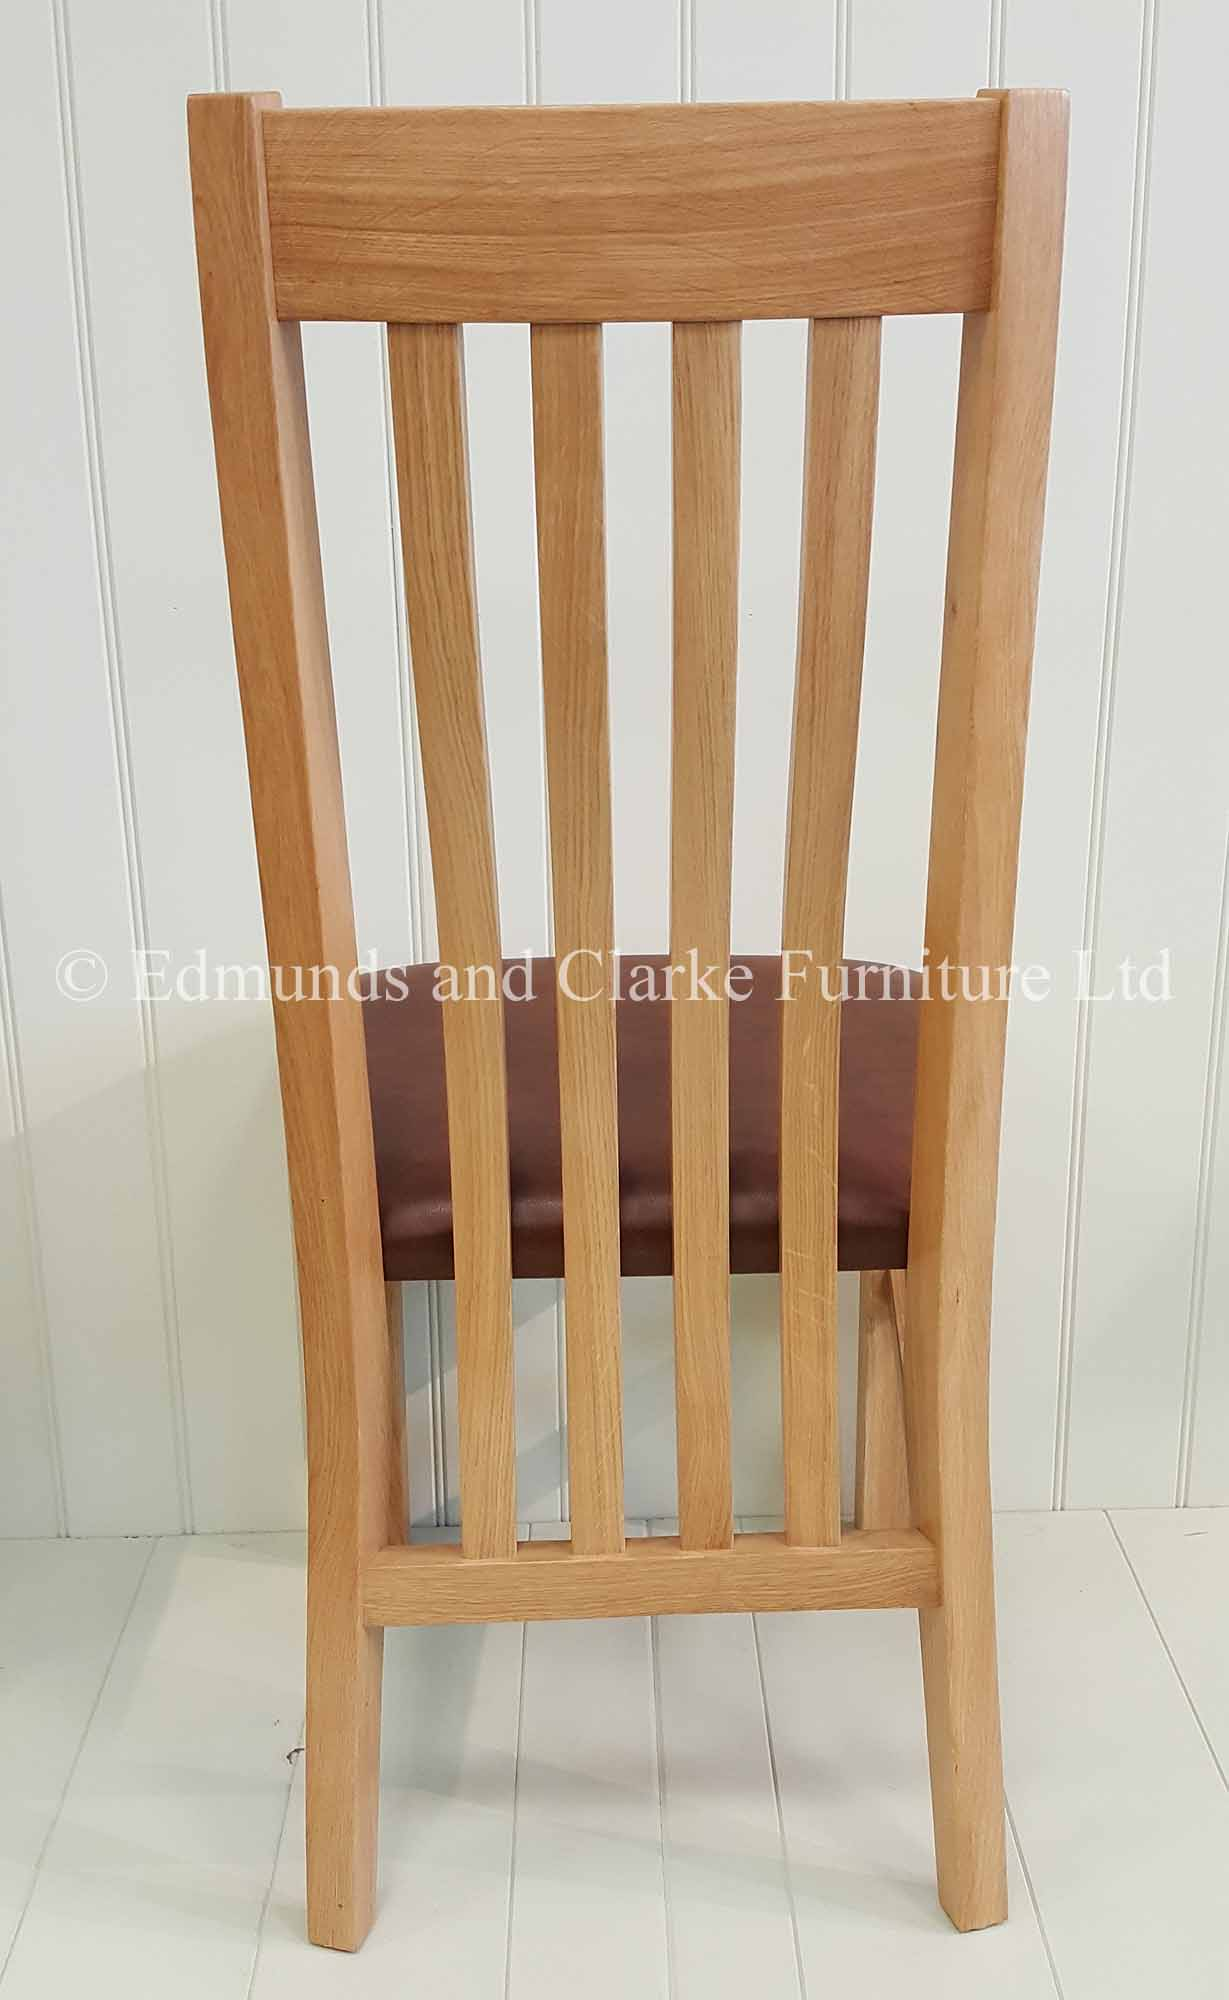 Harrington oak dining chair with leather seat